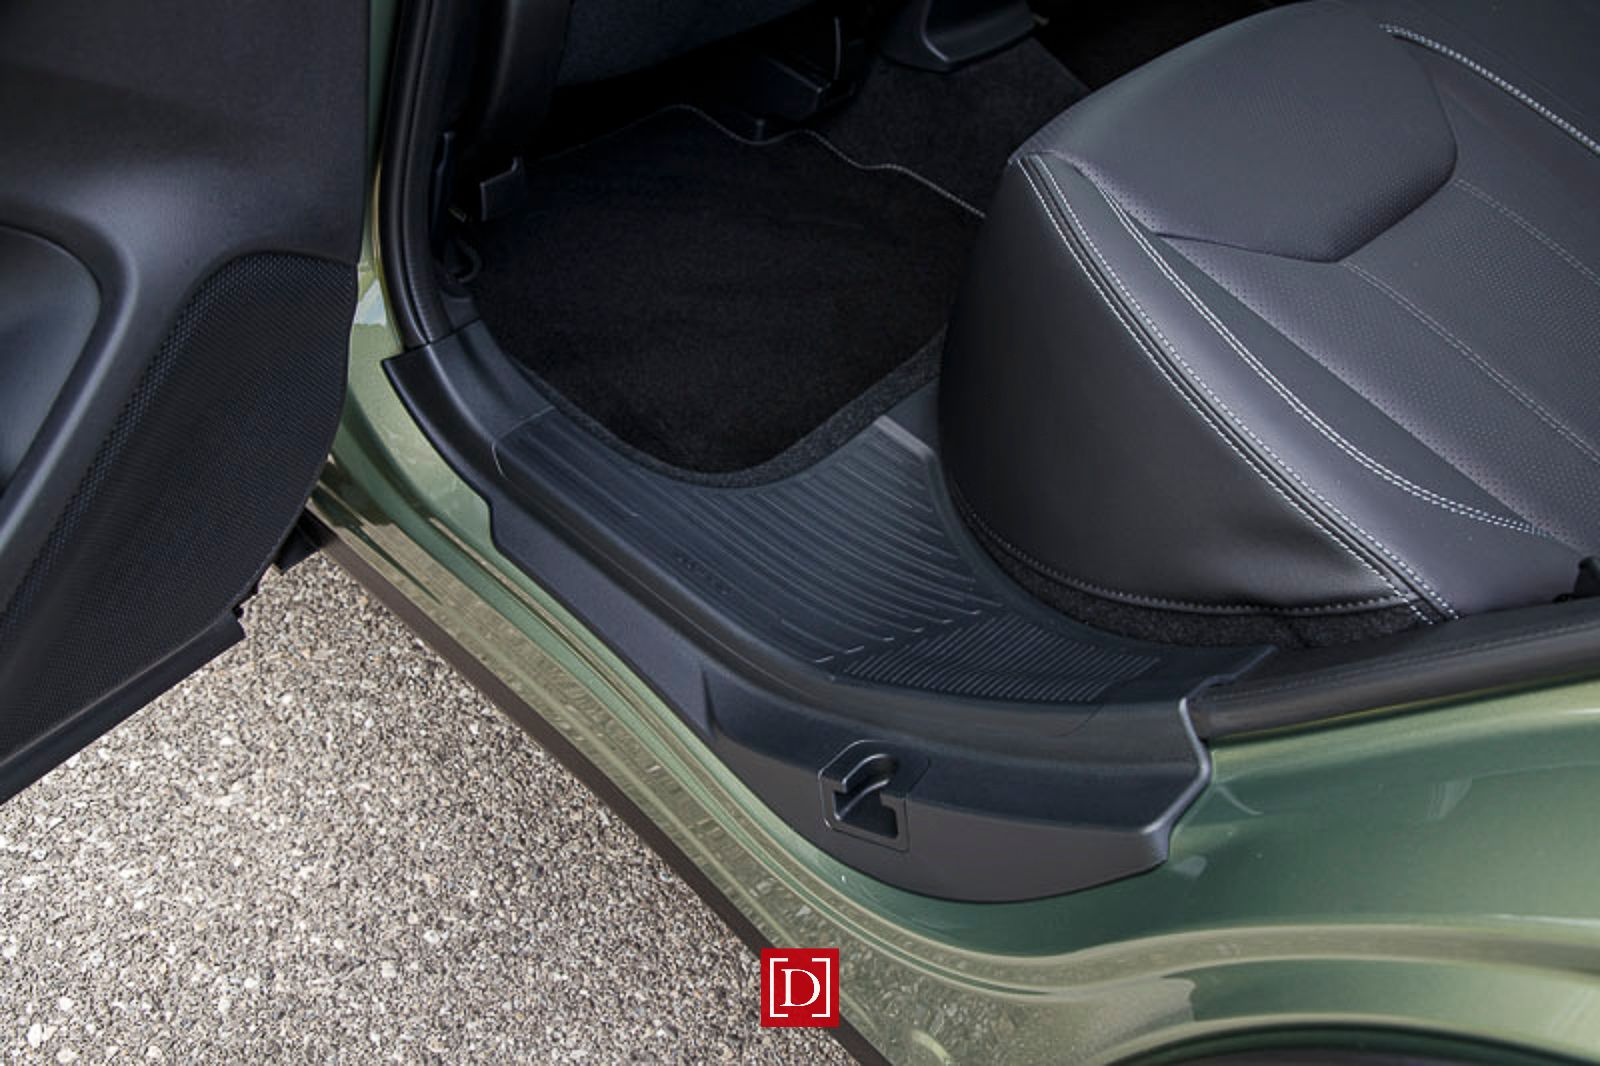 forester-e-boxer_low-037-22853